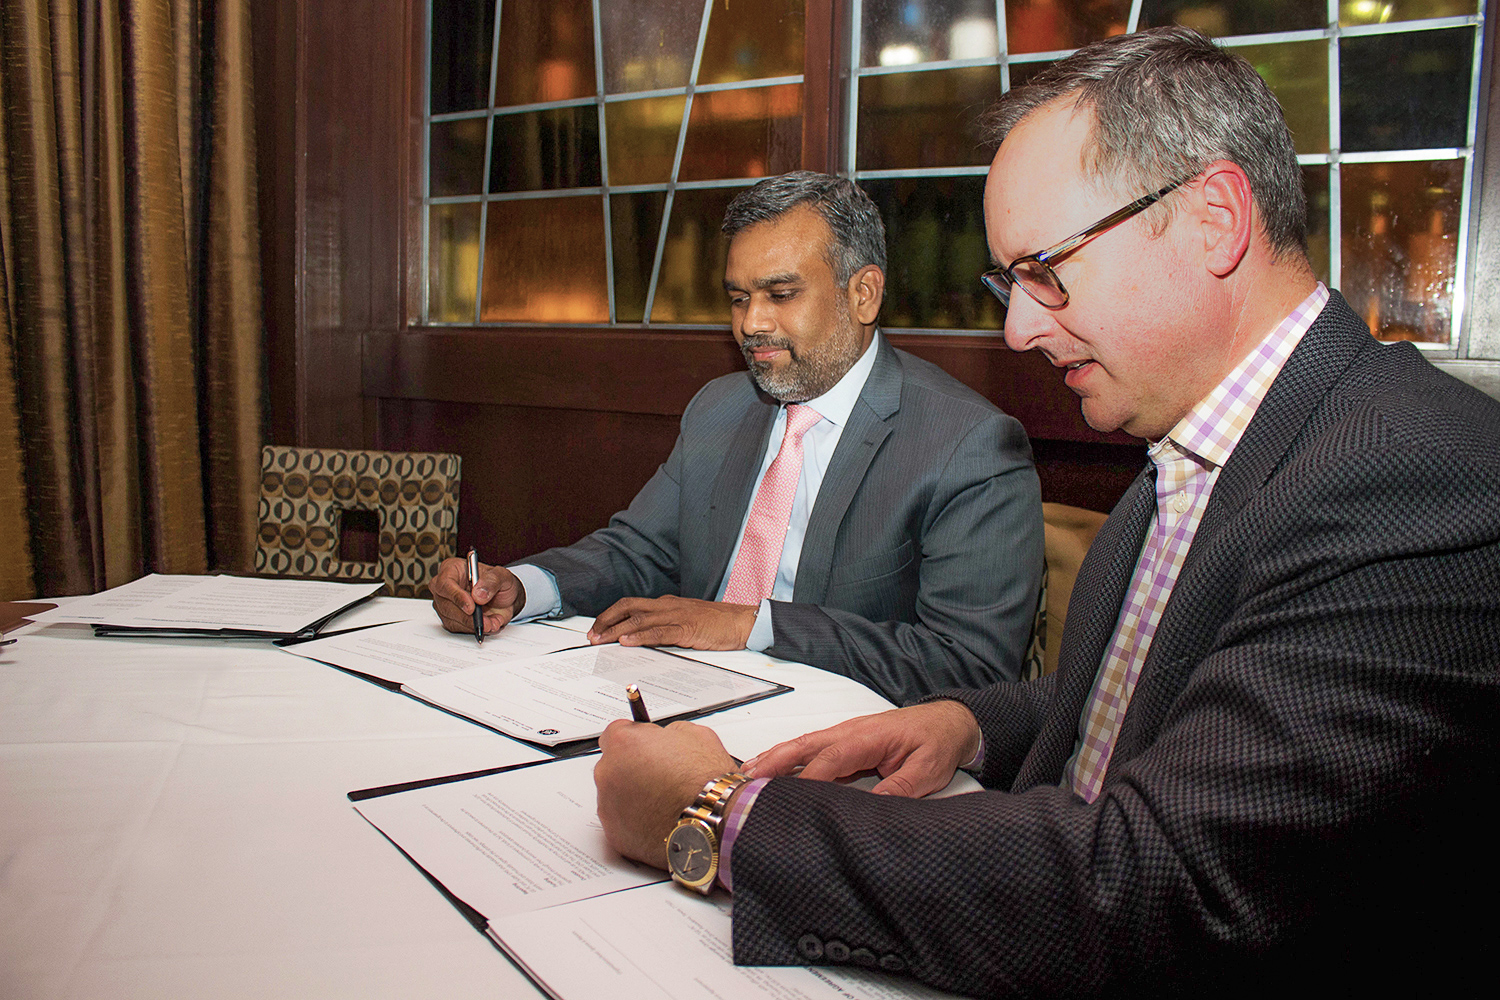 Sulzer signs deal with GE